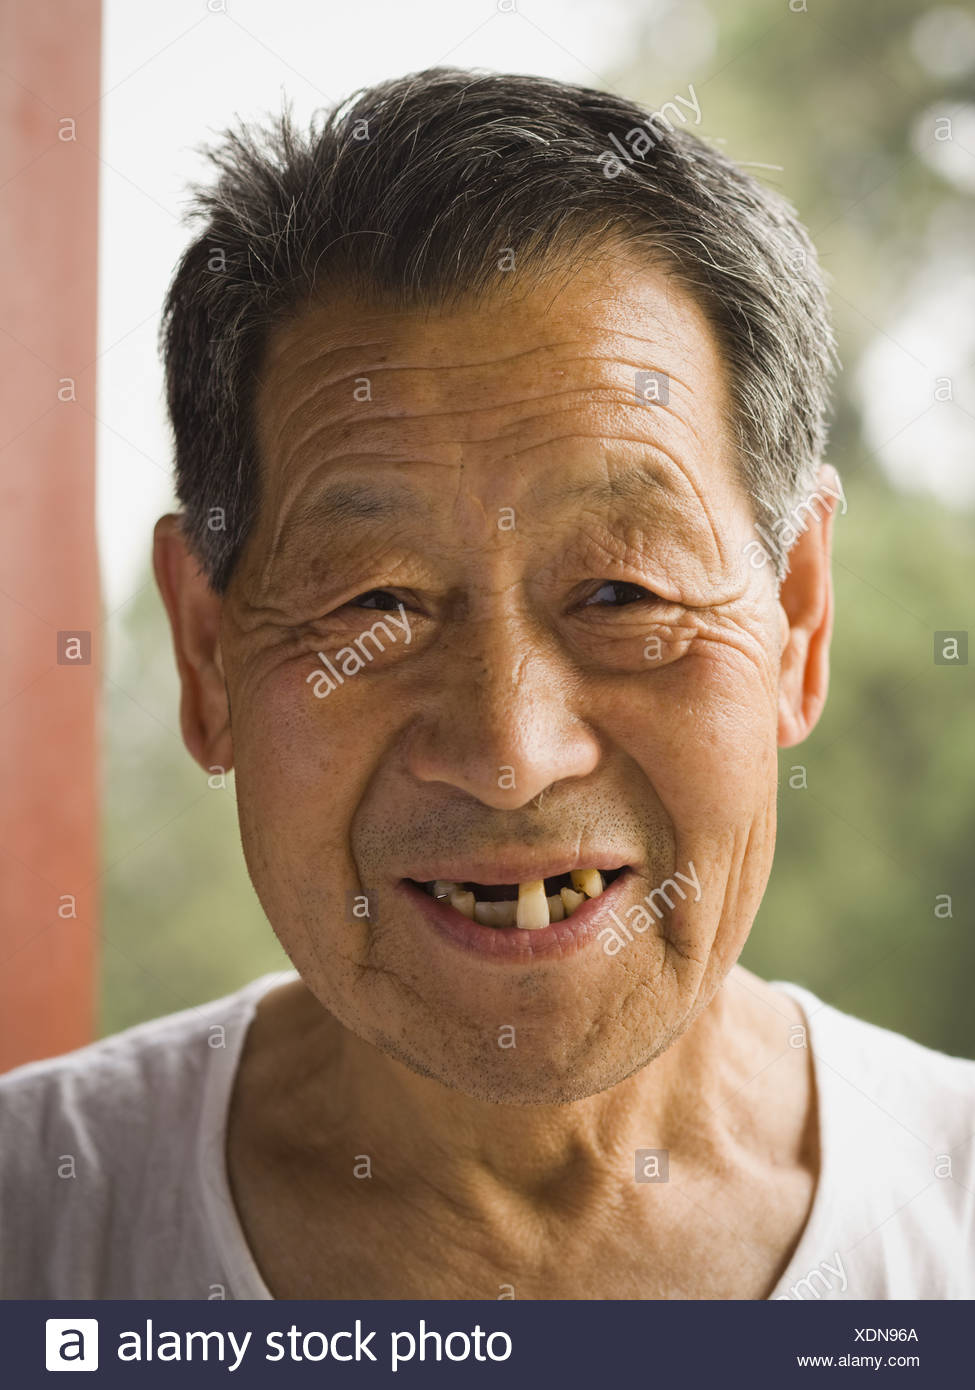 Toothless Man Smiling Stock Photos & Toothless Man Smiling